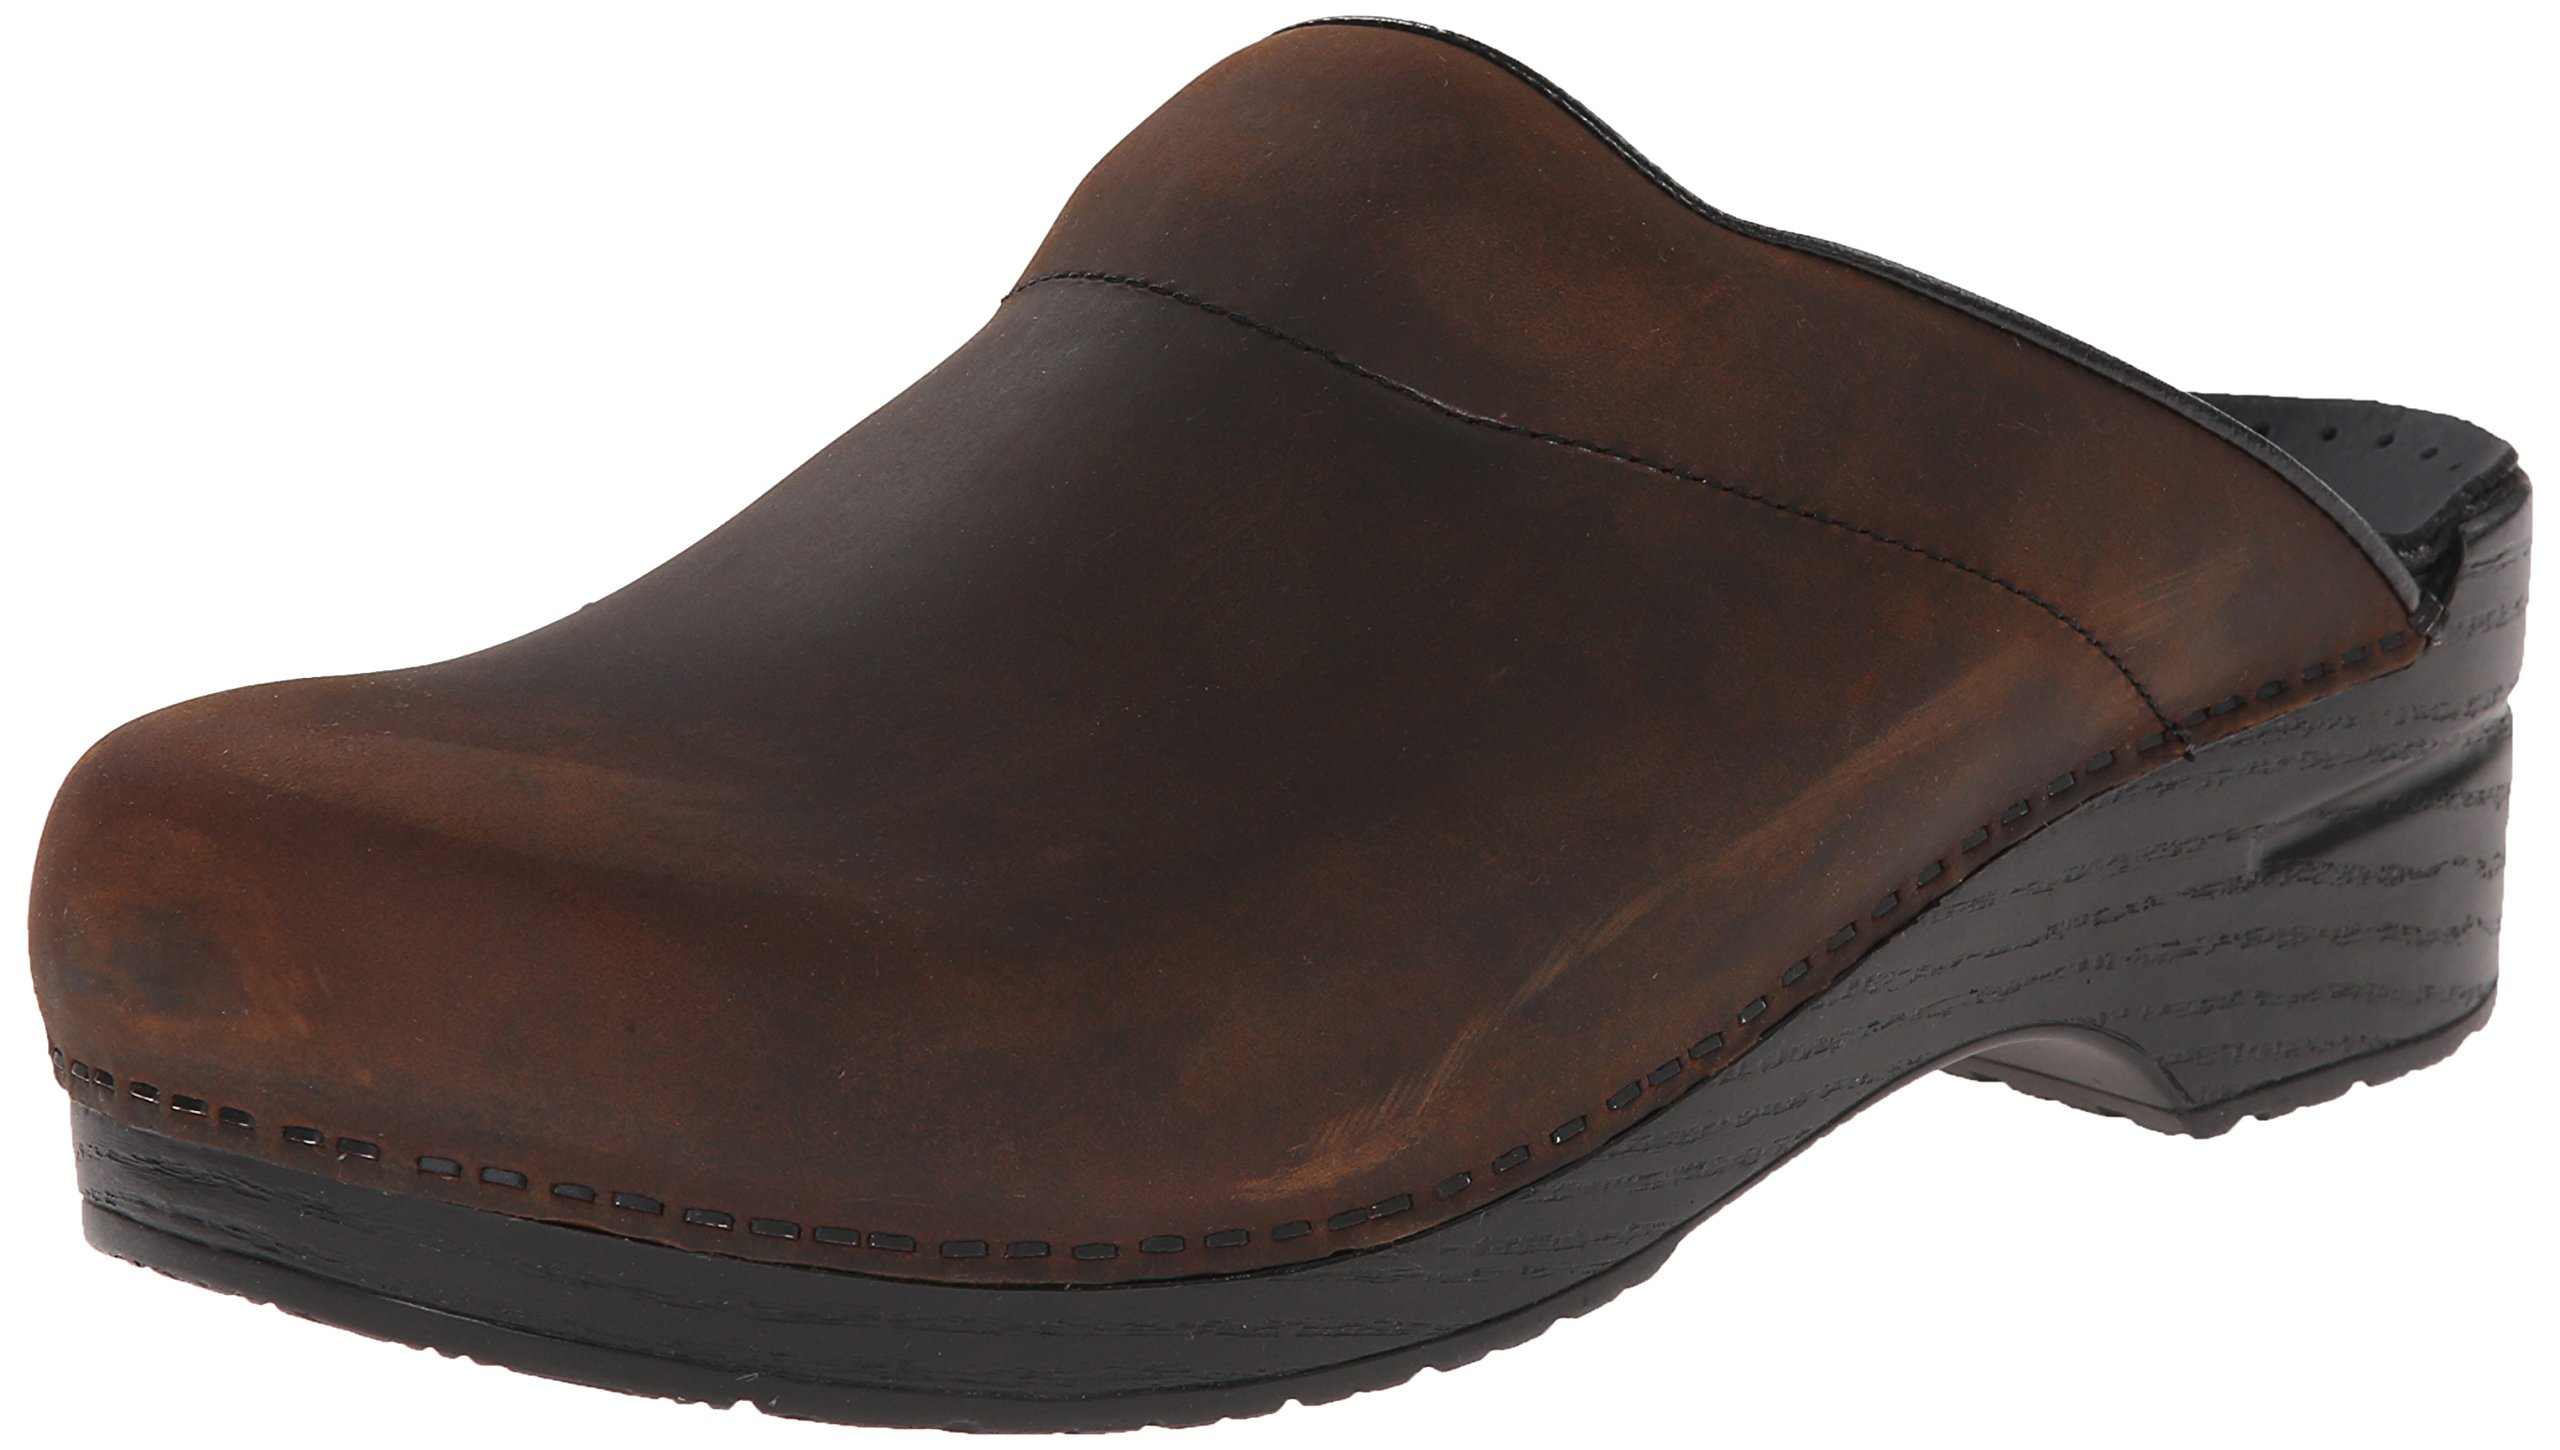 Dansko Karl, Antique Brown/Black Sole 44 (US Men's 10.5-11) Regular